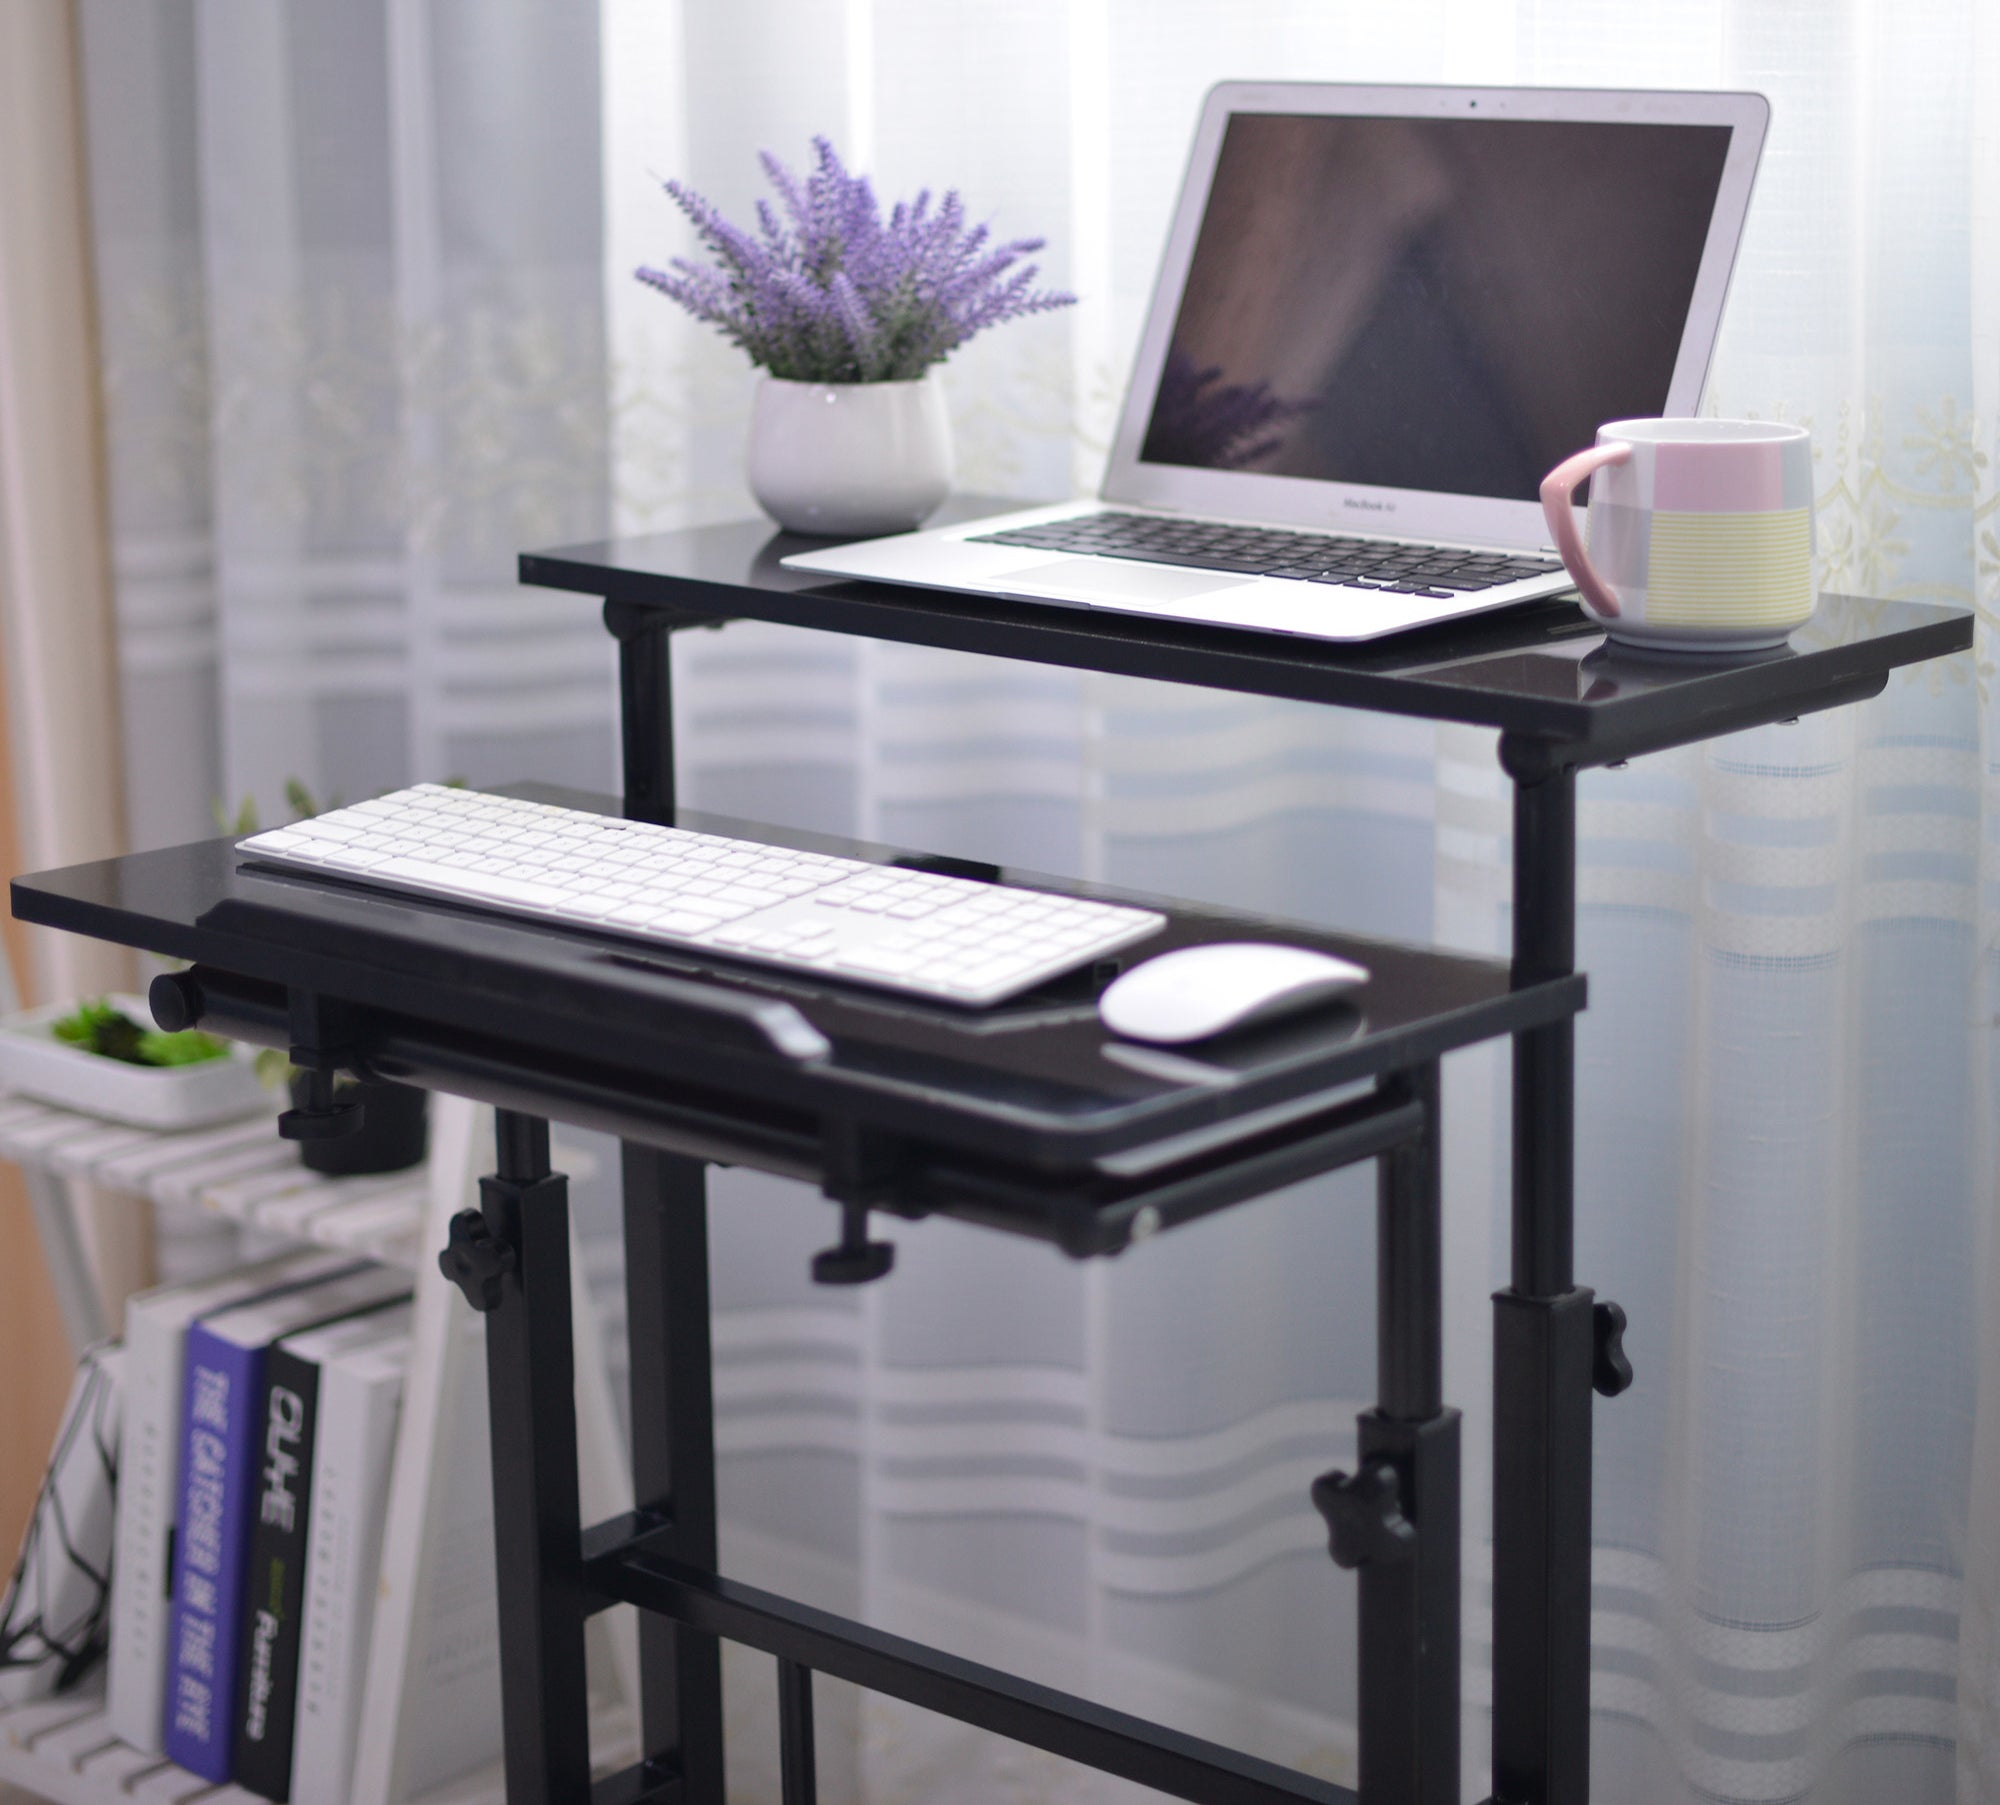 A black standing desk with a spot for a laptop and an adjustable pull out shelf for a keyboard